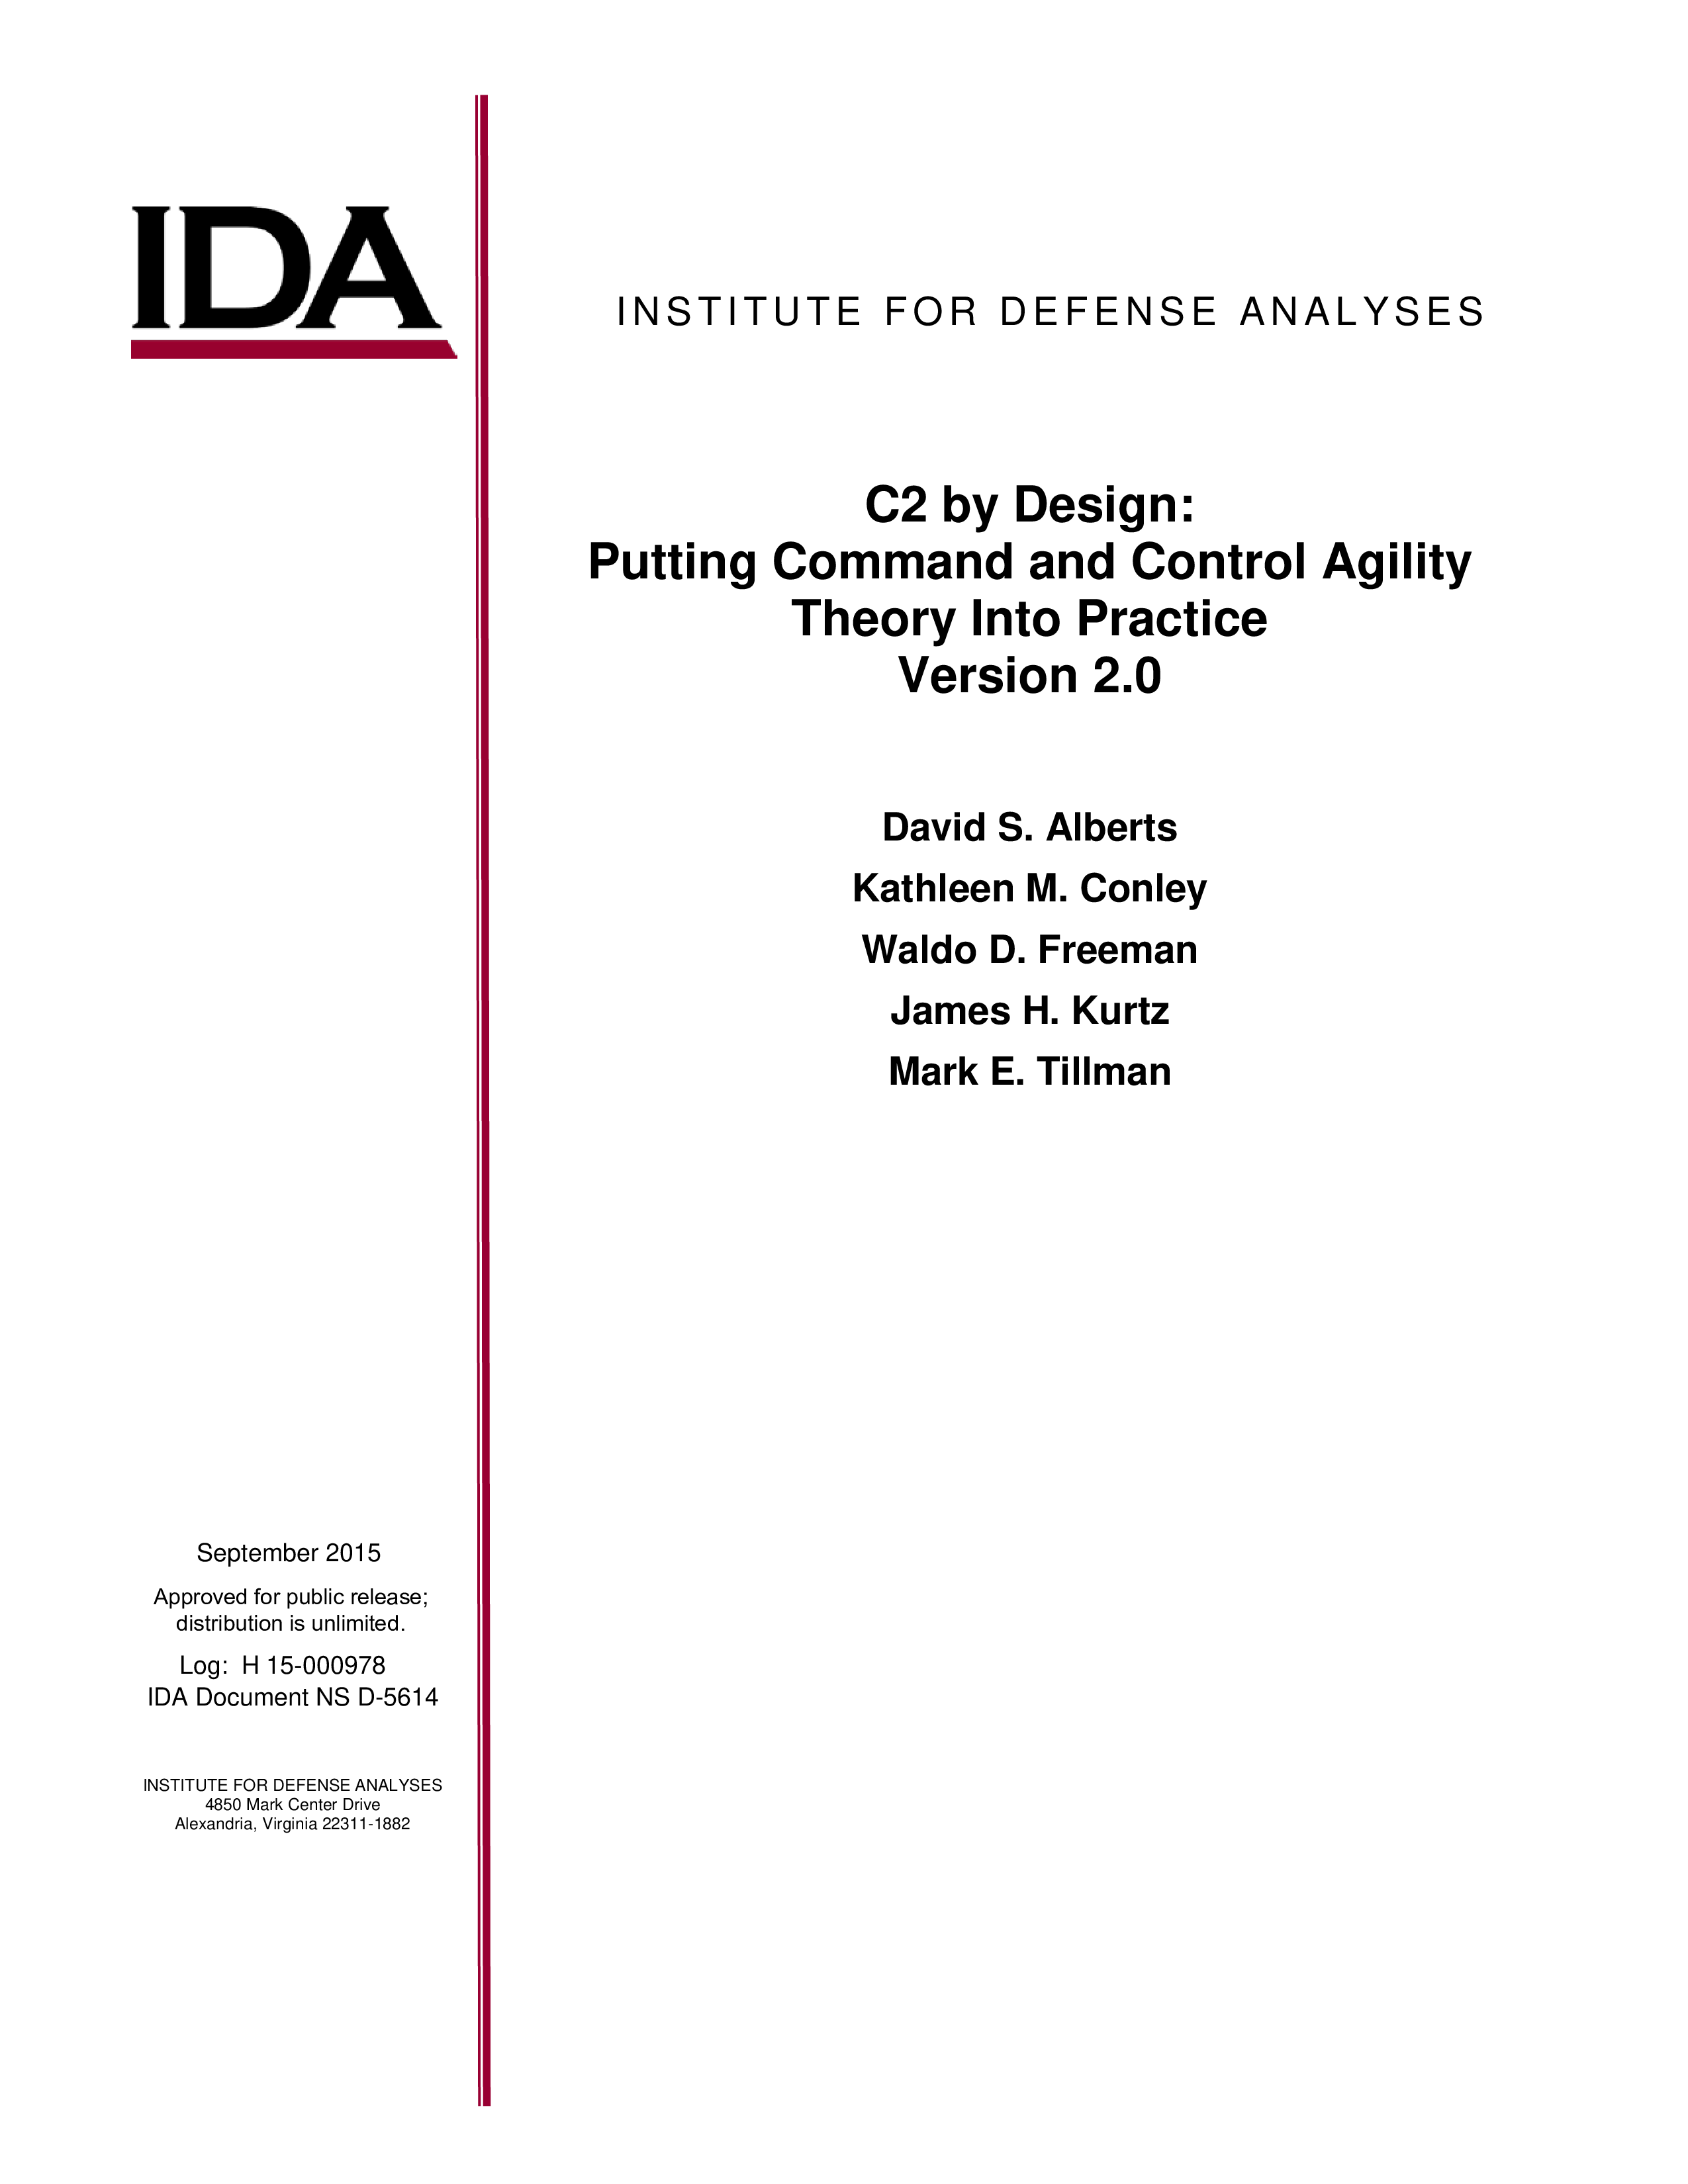 C2 by Design: Putting Command and Control Agility Theory Into Practice Version 2.0